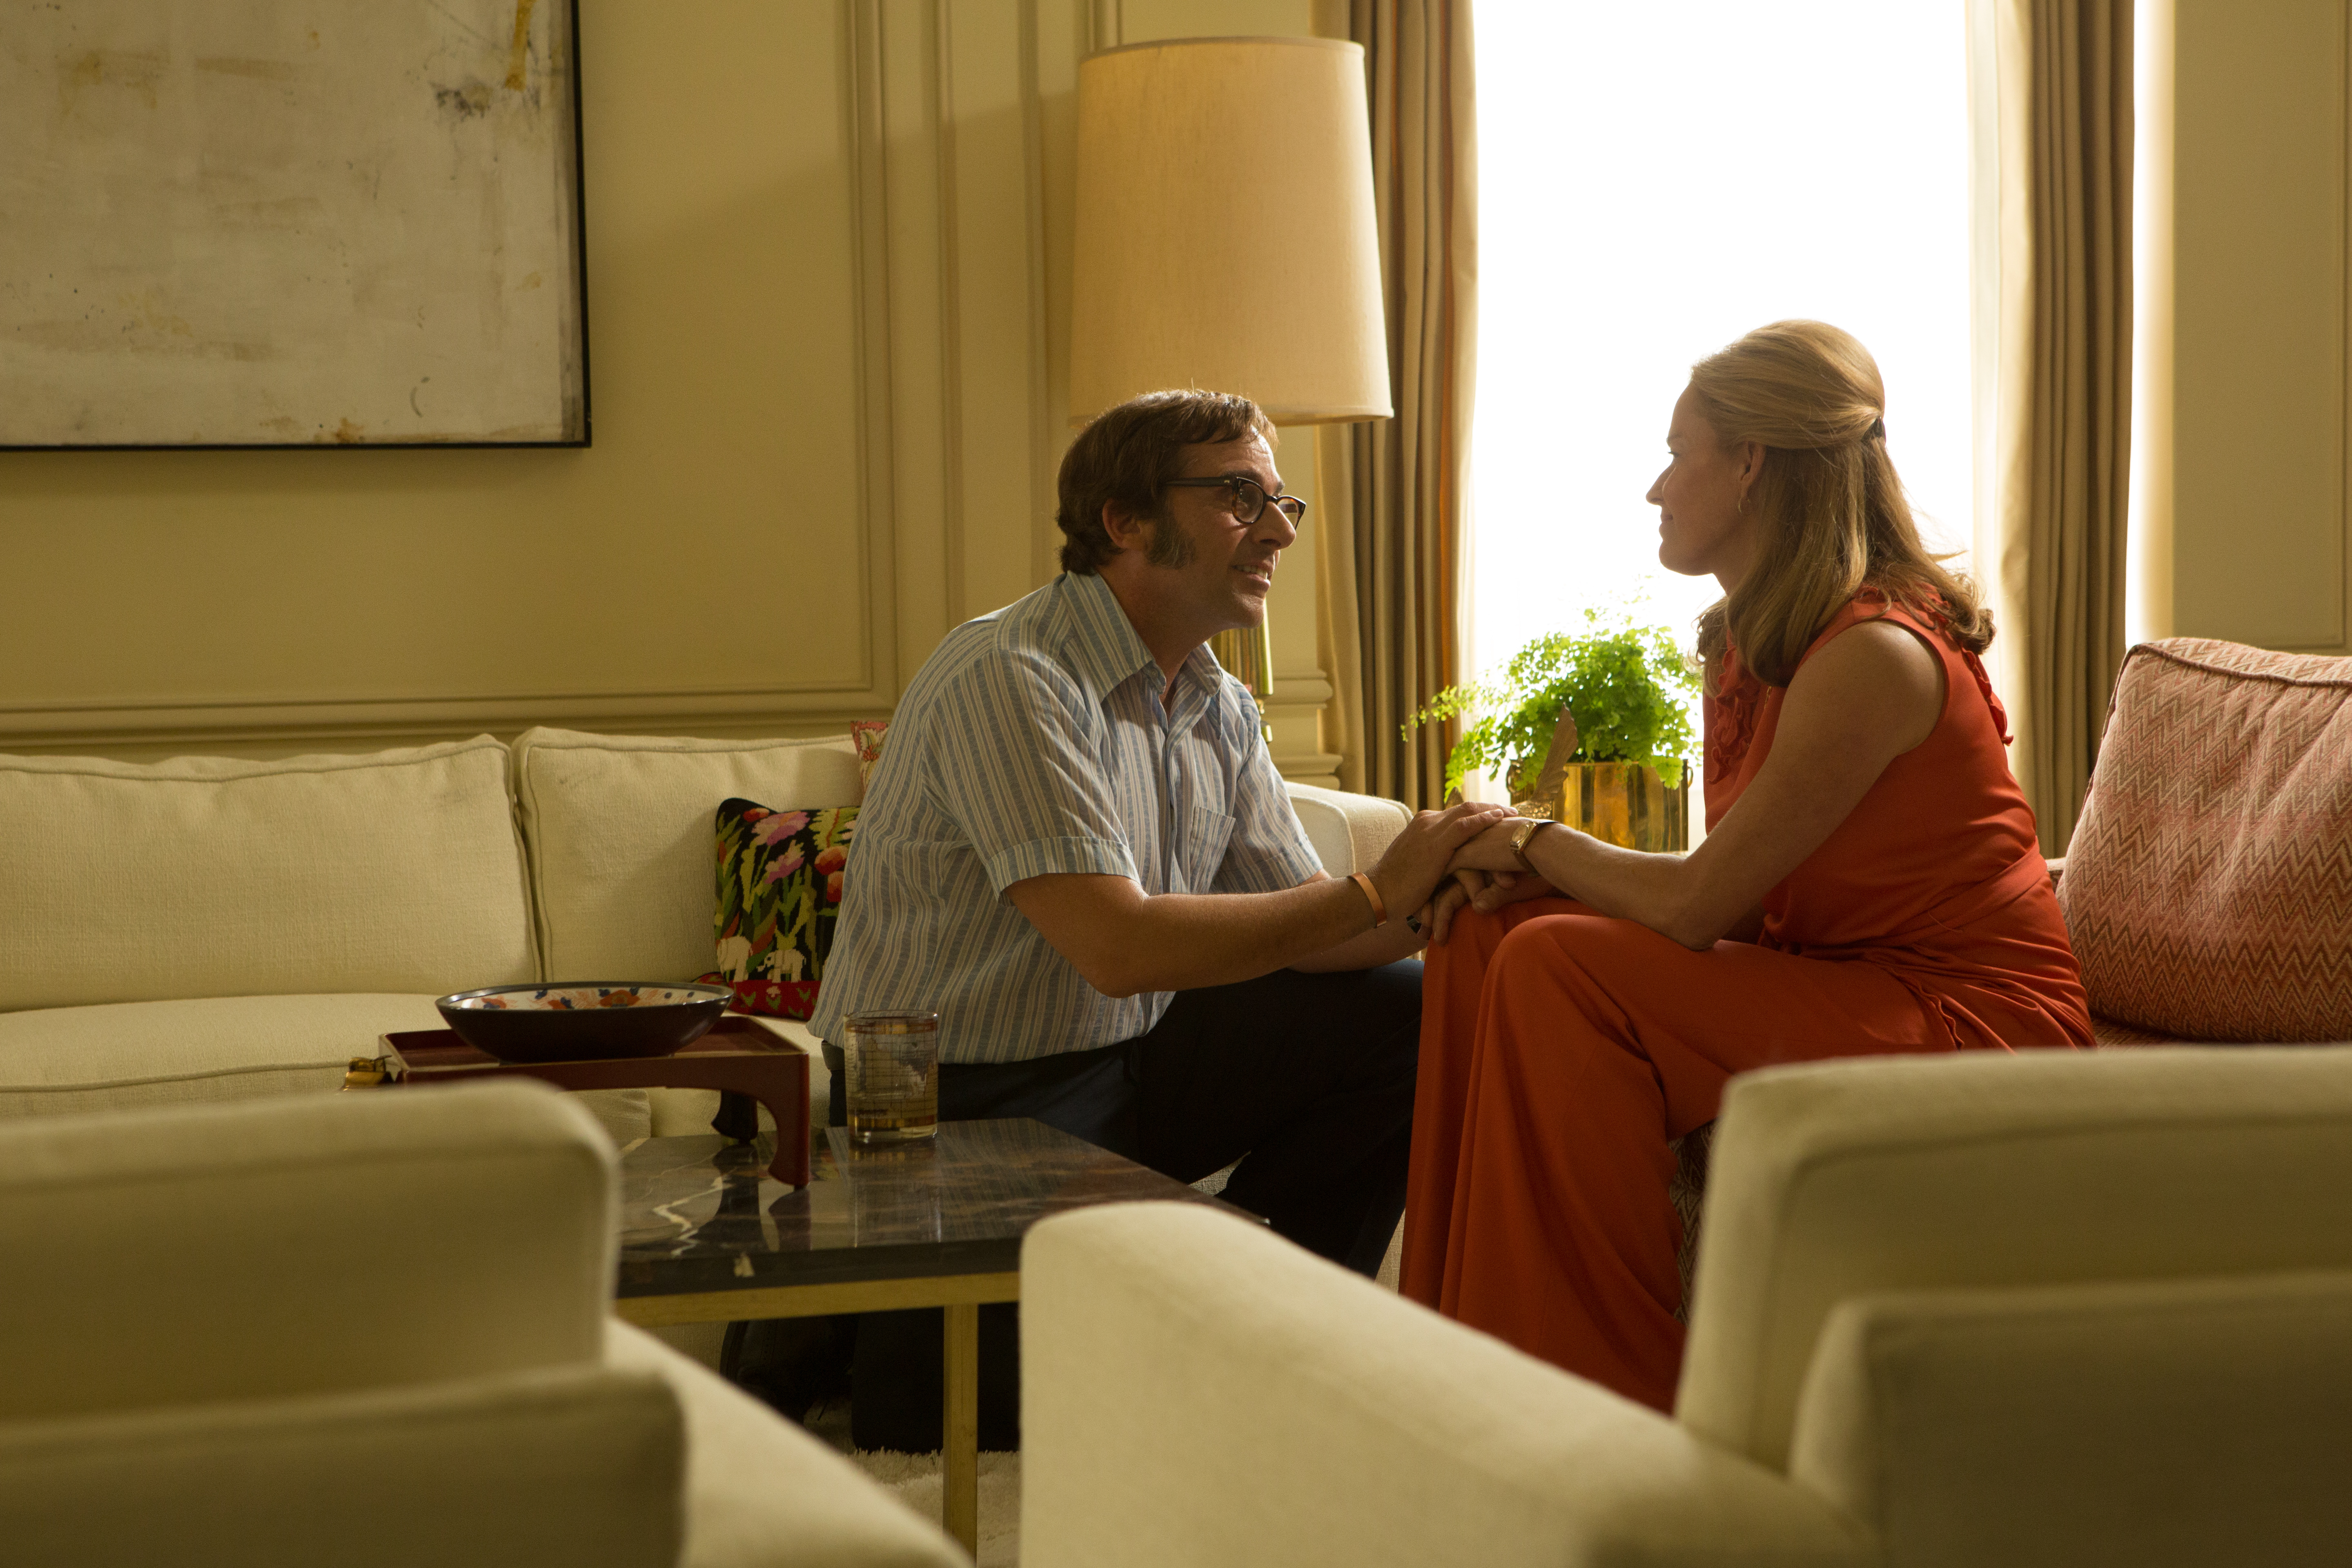 Steve Carell and Elisabeth Shue in the film BATTLE OF THE SEXES. Photo by Melinda Sue Gordon. © 2017 Twentieth Century Fox Film Corporation All Rights Reserved